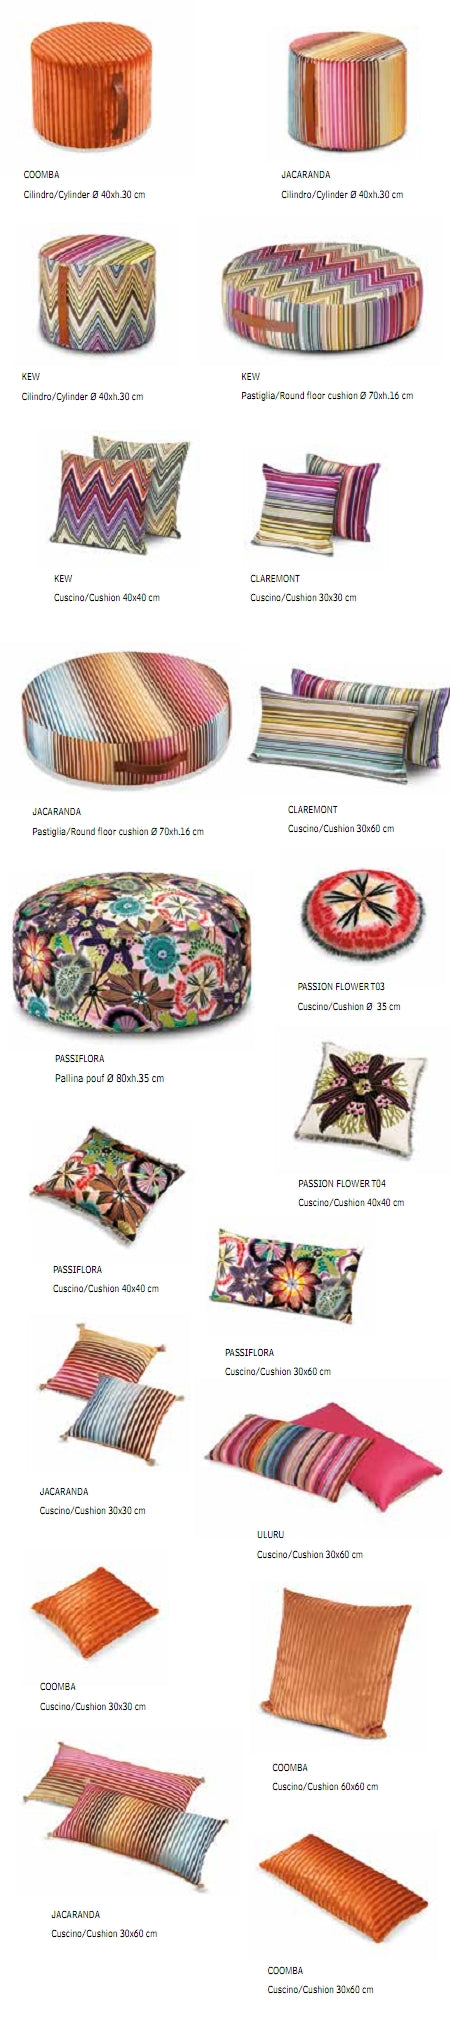 Missoni Cushion and Footstool Collection - Passiflora T59 - product list sheet